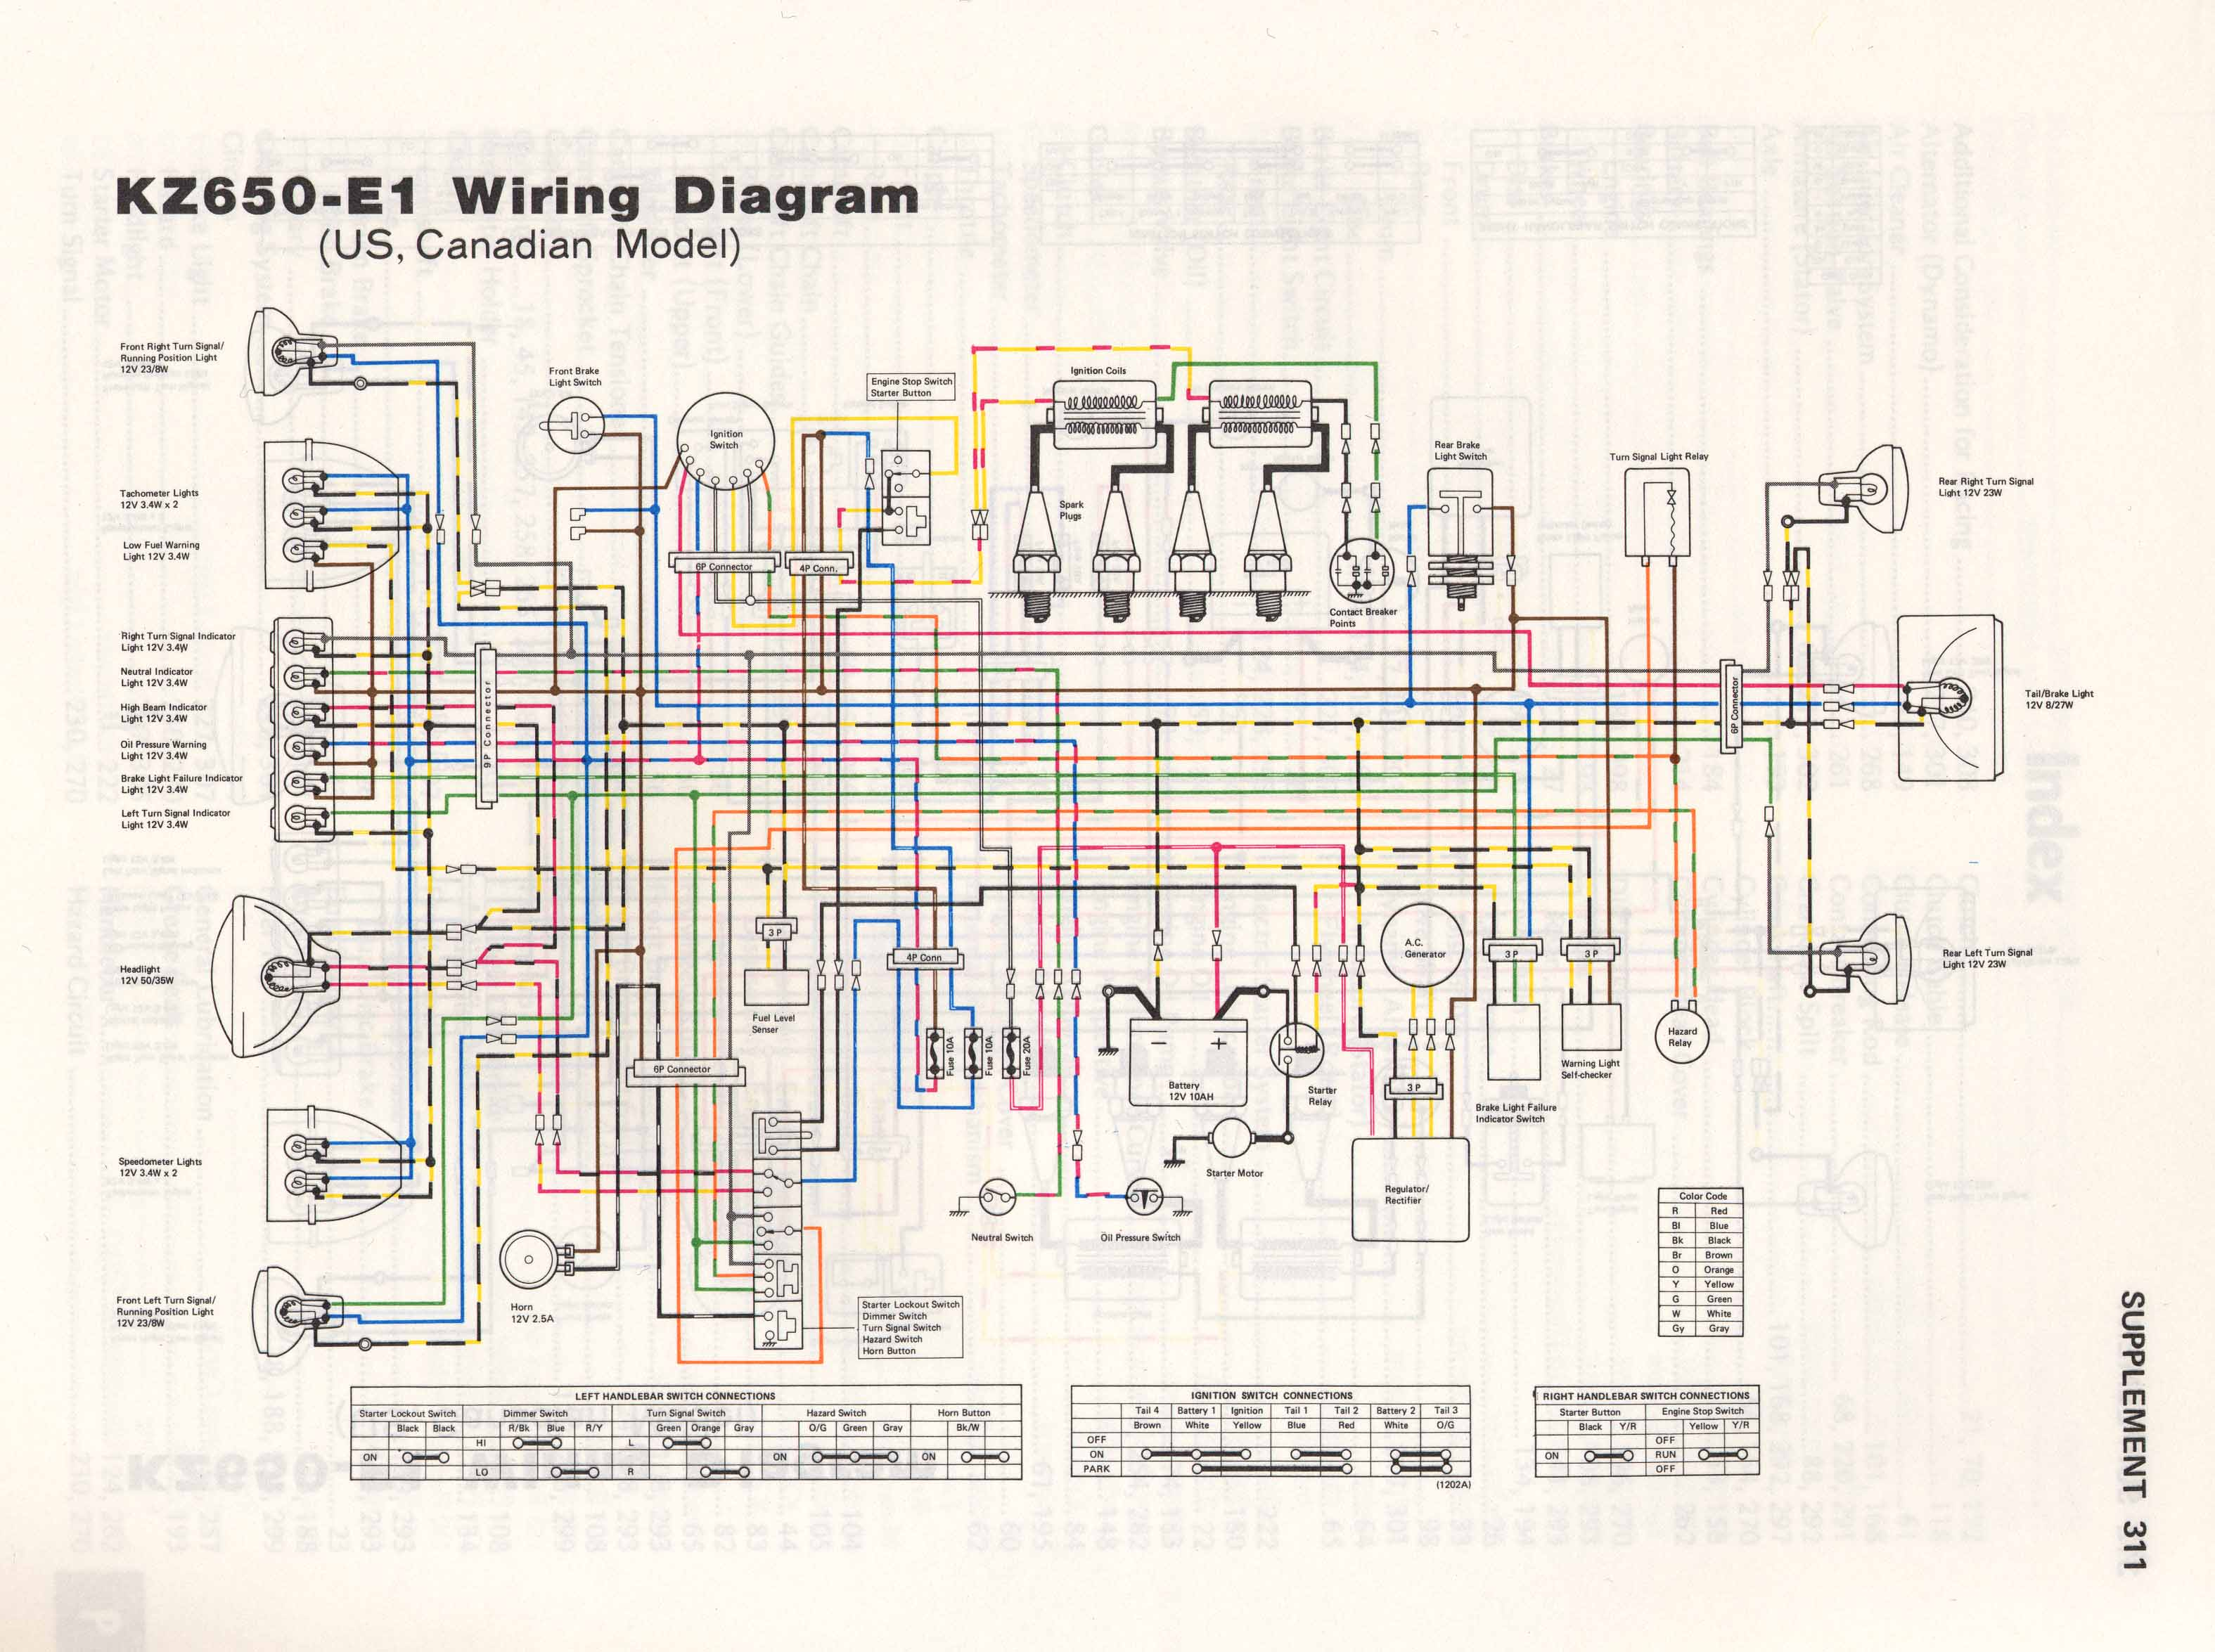 KZ650 E1 kz650 info wiring diagrams kawasaki zx9r e1 wiring diagram at alyssarenee.co